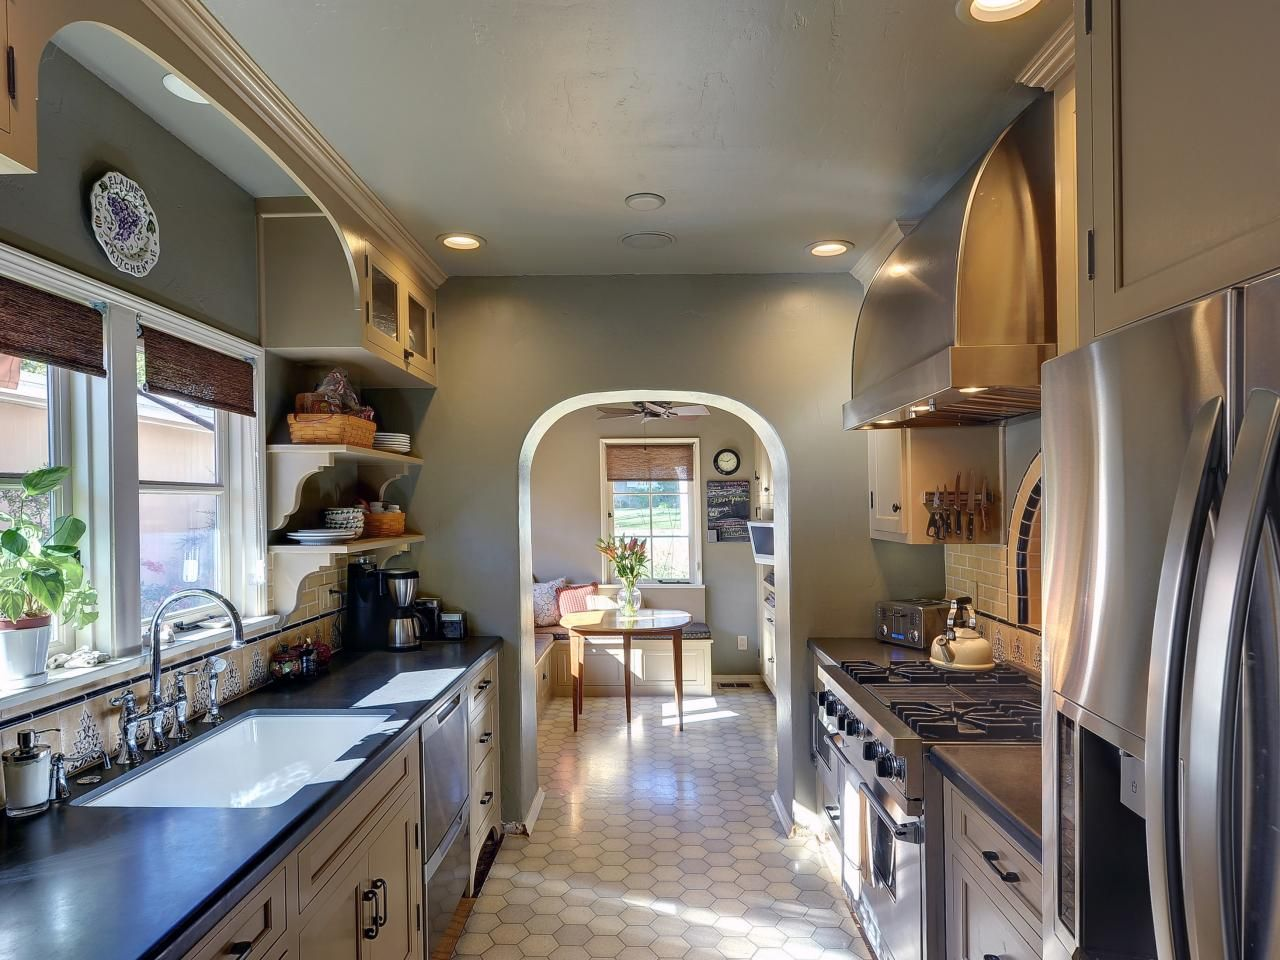 Best Pictures Of Beautiful Kitchen Designs Layouts From Hgtv 640 x 480